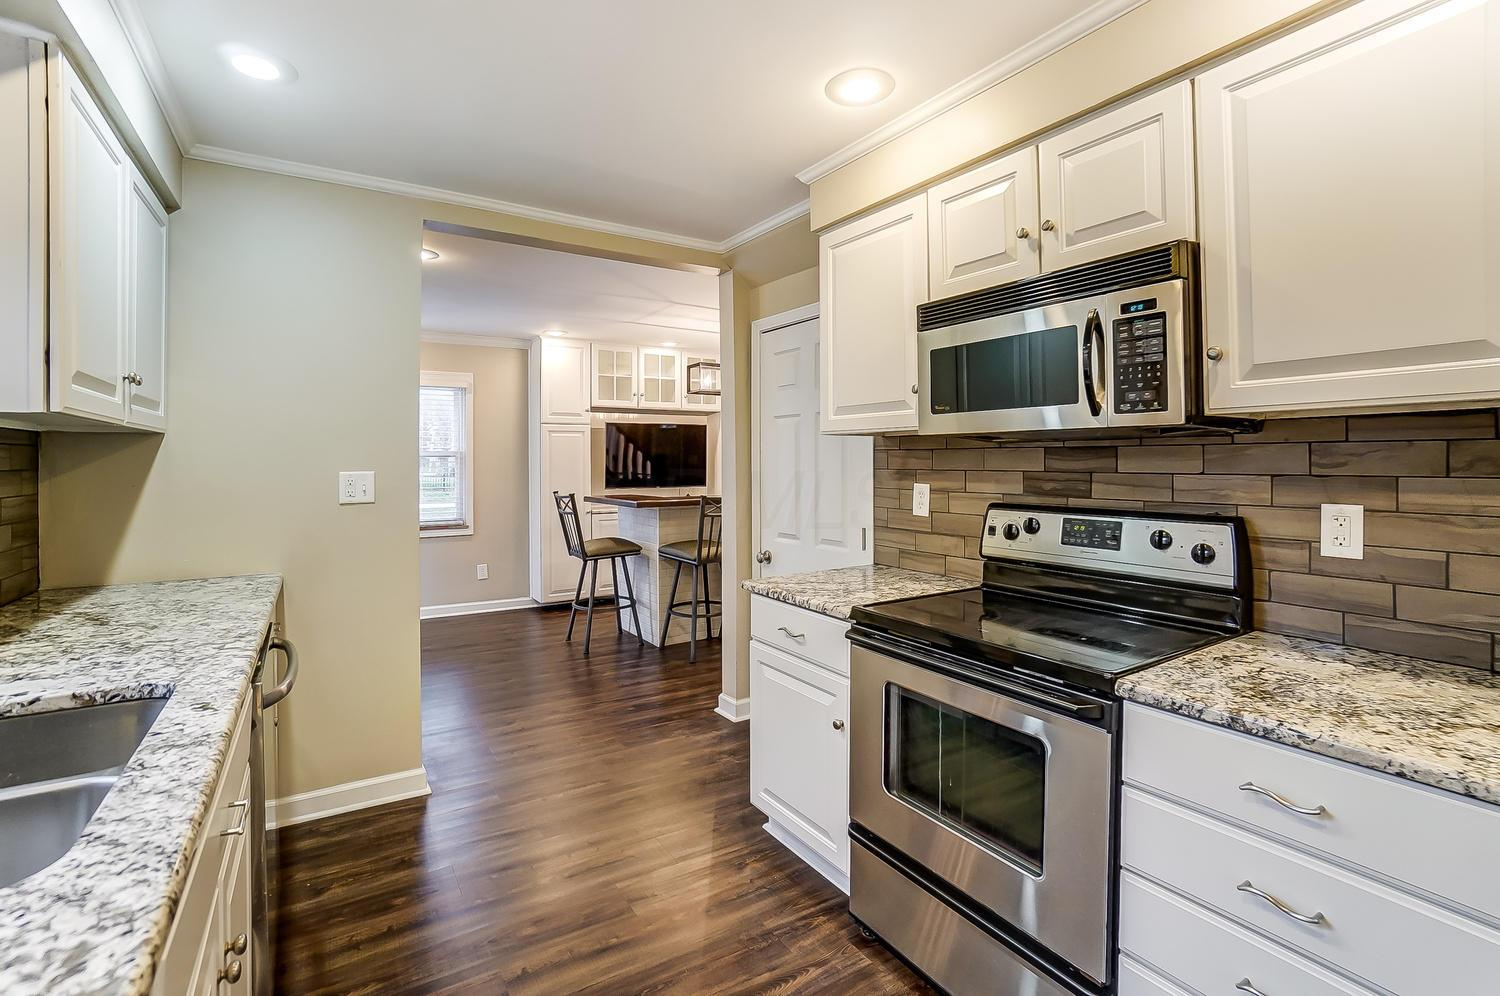 2755 Coventry Road, Upper Arlington, Ohio 43221, 3 Bedrooms Bedrooms, ,2 BathroomsBathrooms,Residential,For Sale,Coventry,221000955